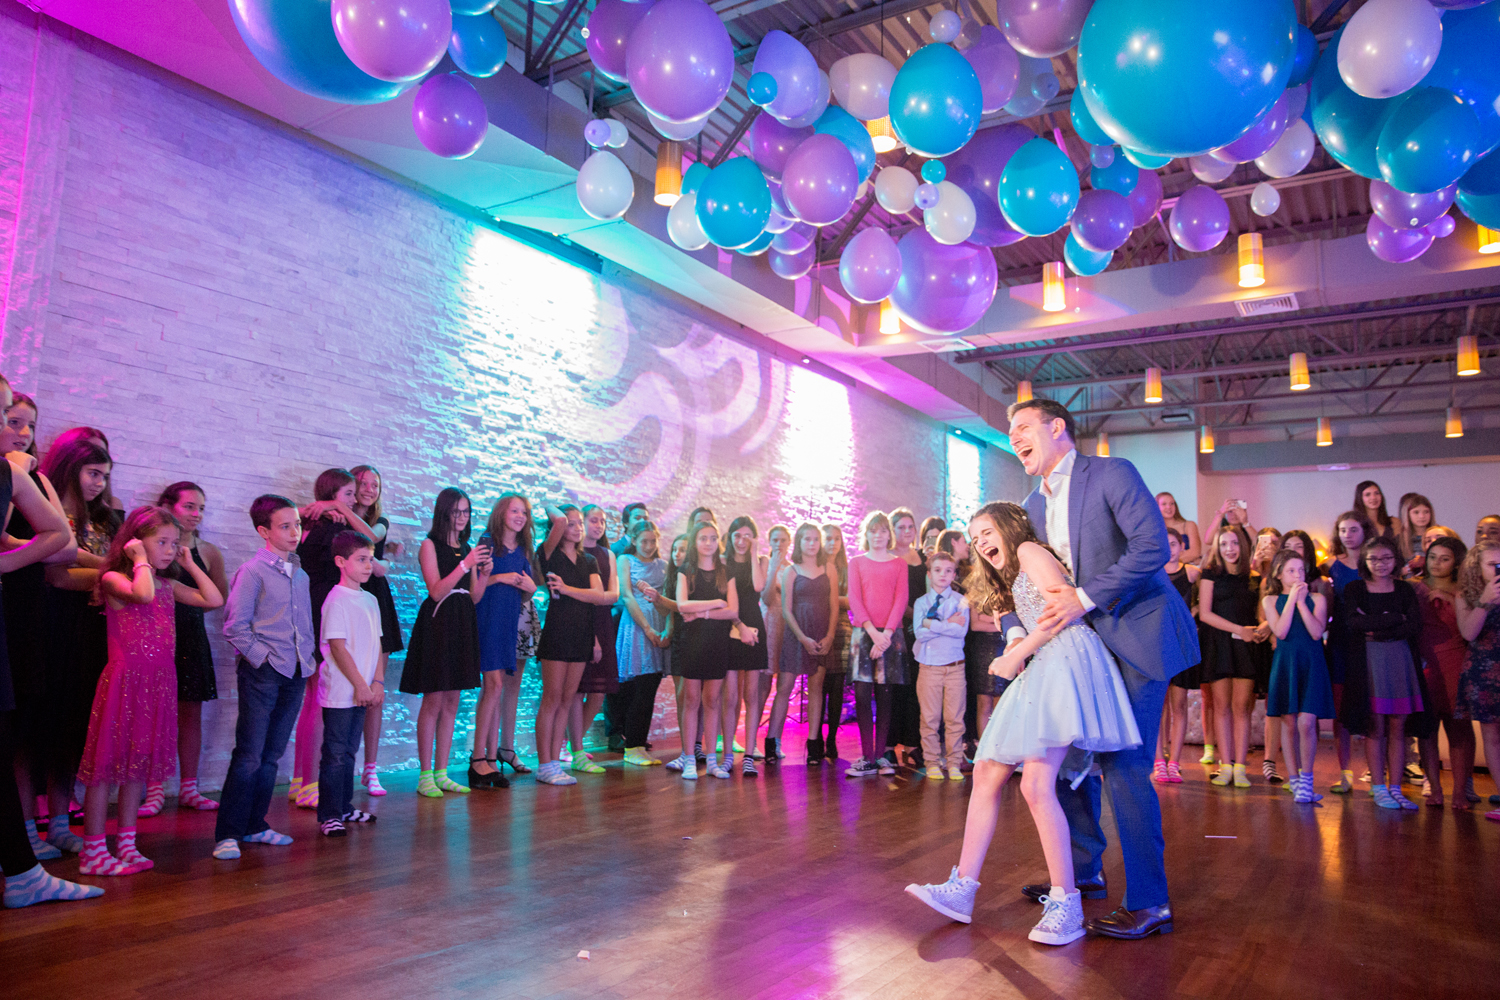 NJ_Bar_Mitzvah_Photo_26.jpg